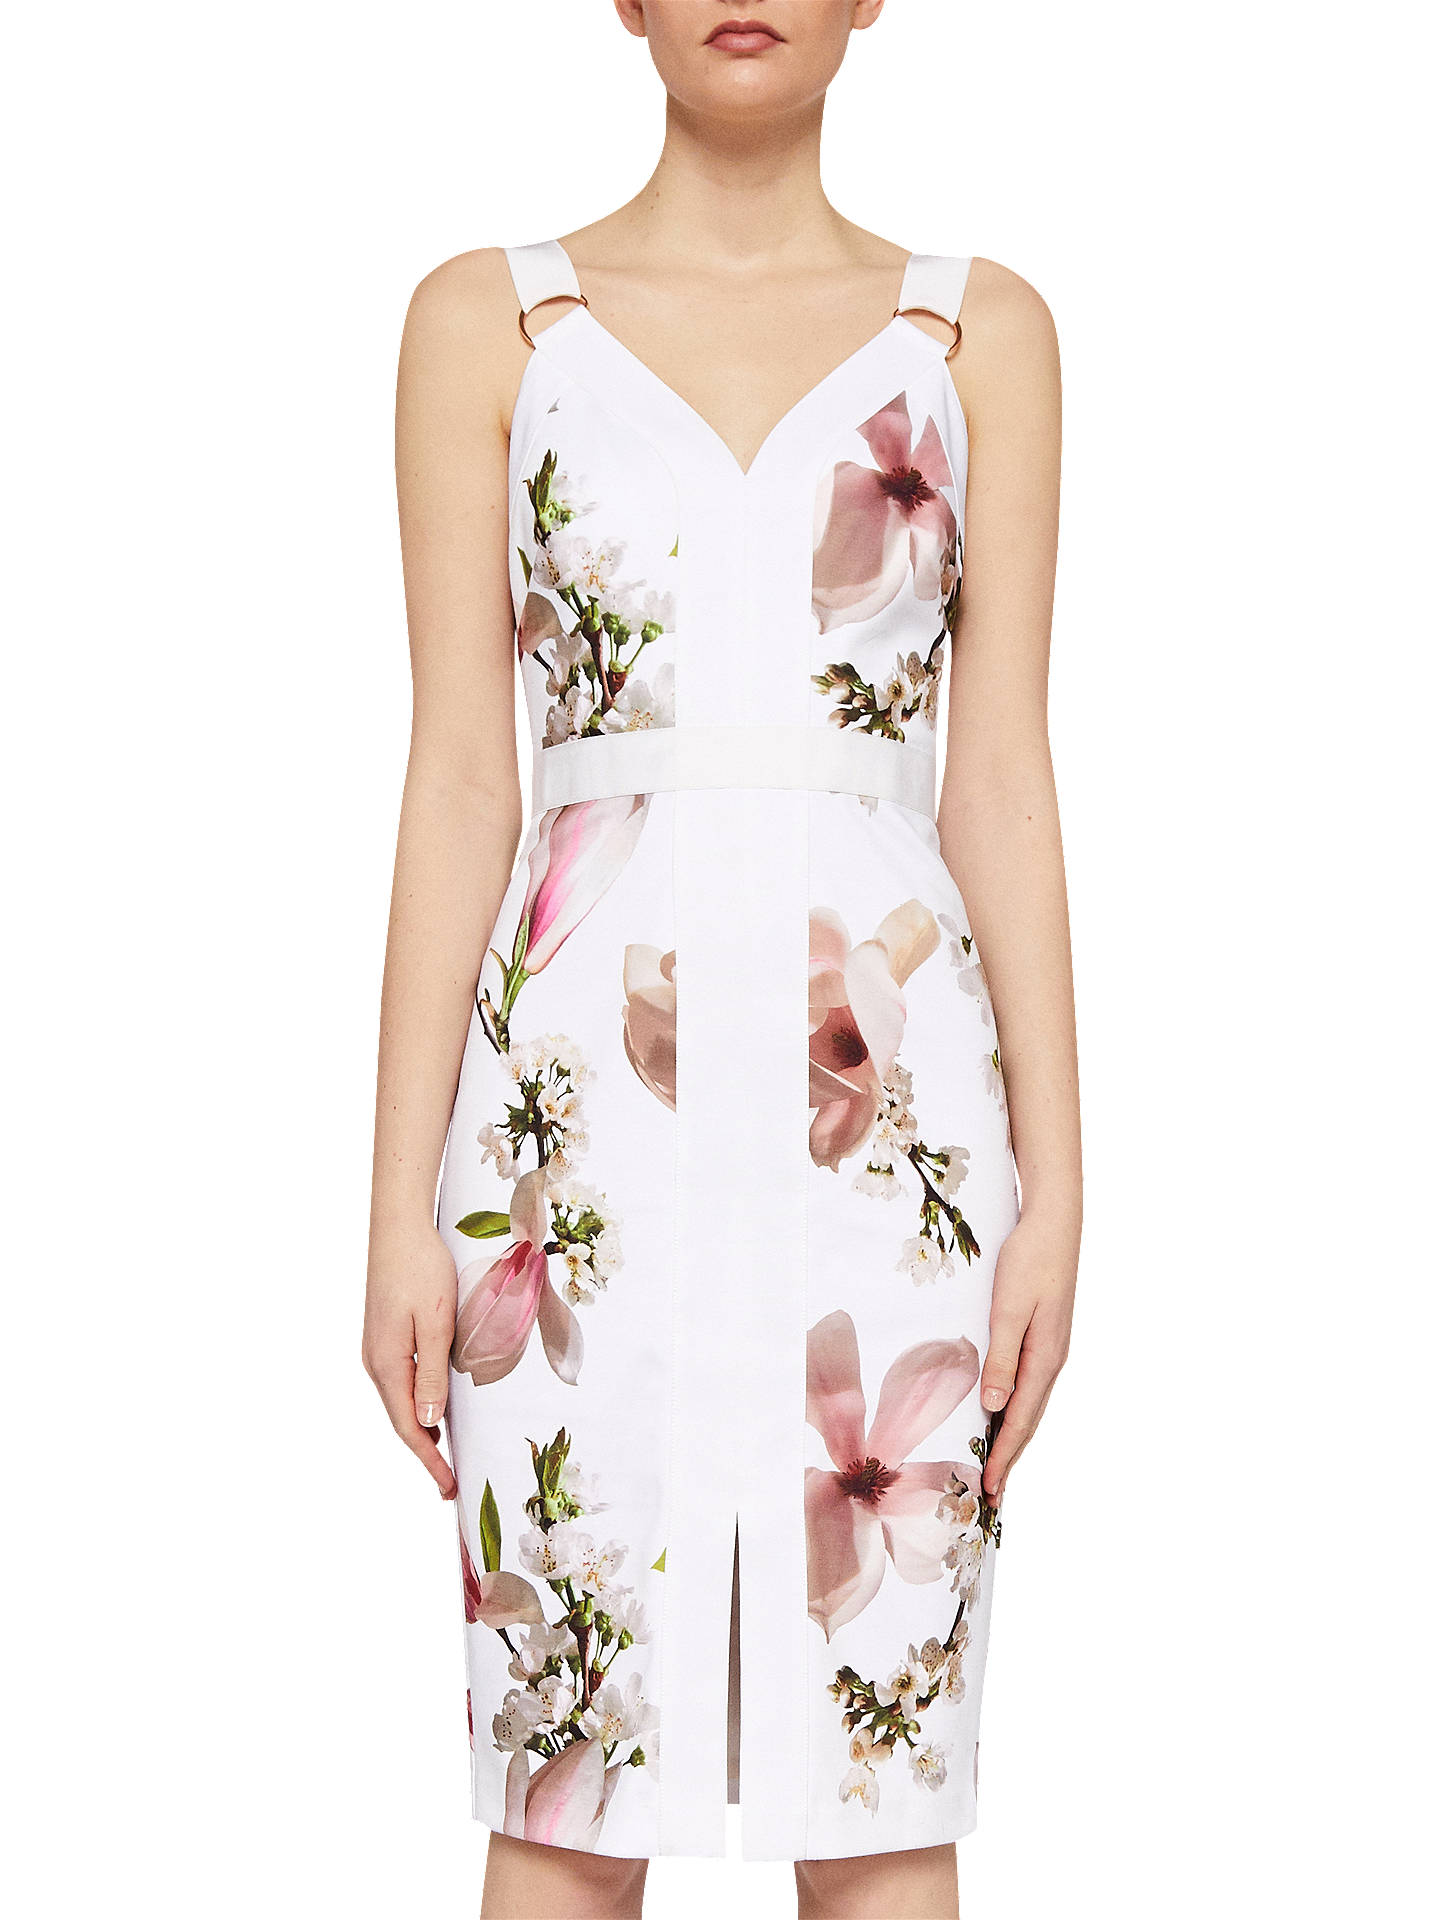 61b601f7e97a0 View All Women s Dresses. Previous Image Next Image. Buy Ted Baker Irasela  Harmony Print Panel Dress